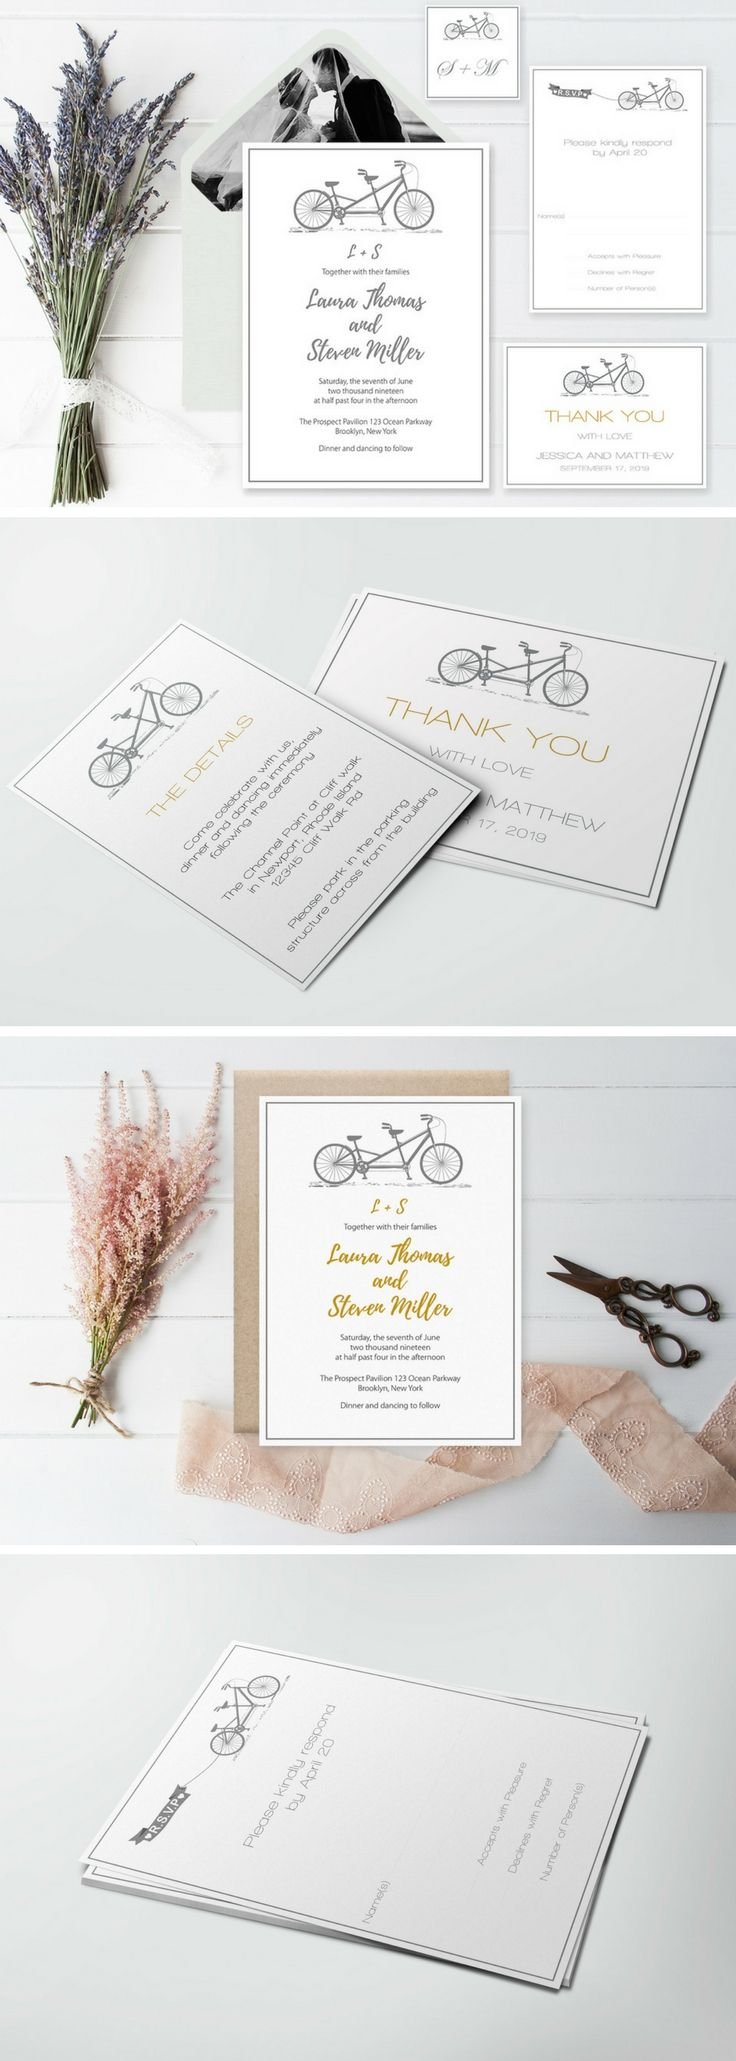 11 Best Wedding Invitations Images On Pinterest Wedding Invitation